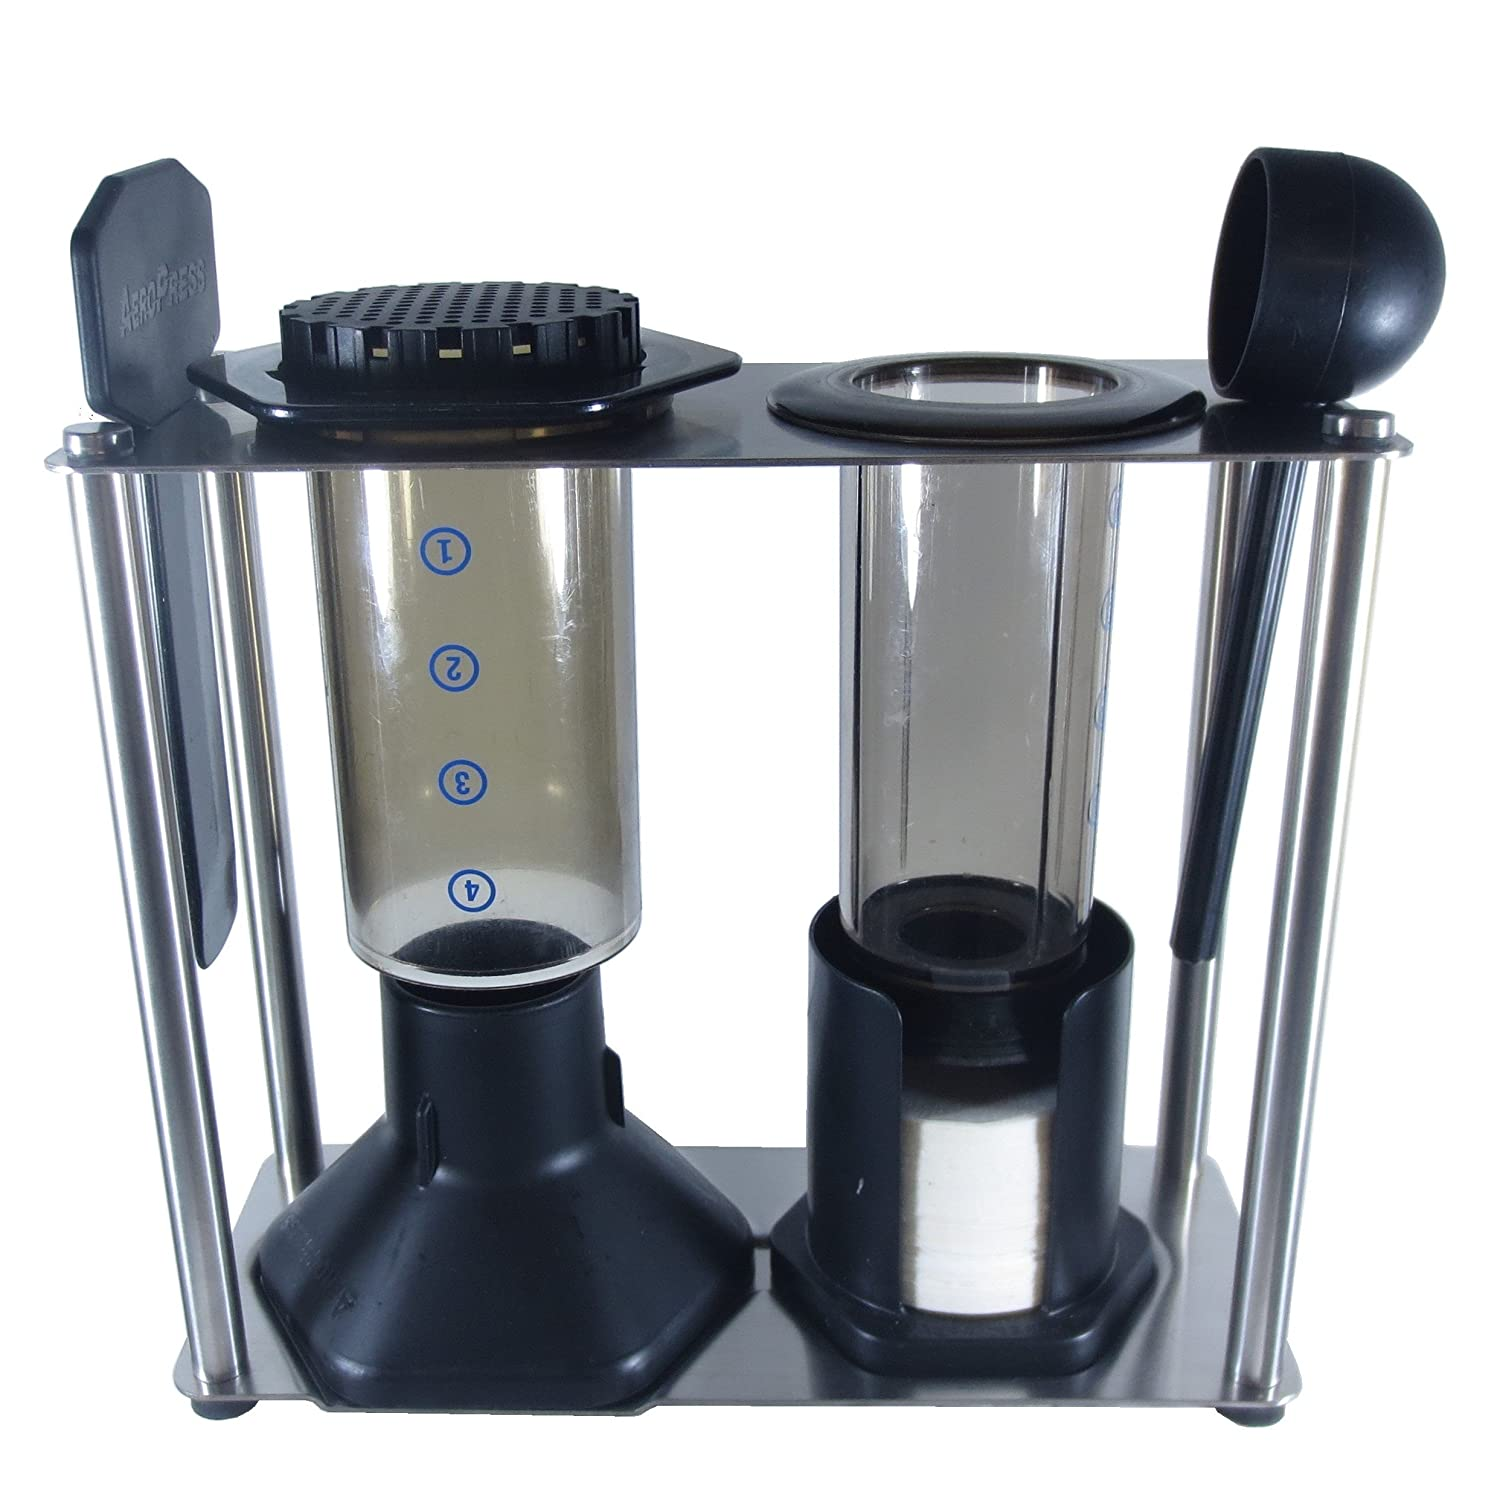 Blue Horse Caddy For Aeropress Coffee Maker Kitchen Fellow Prismo Dining